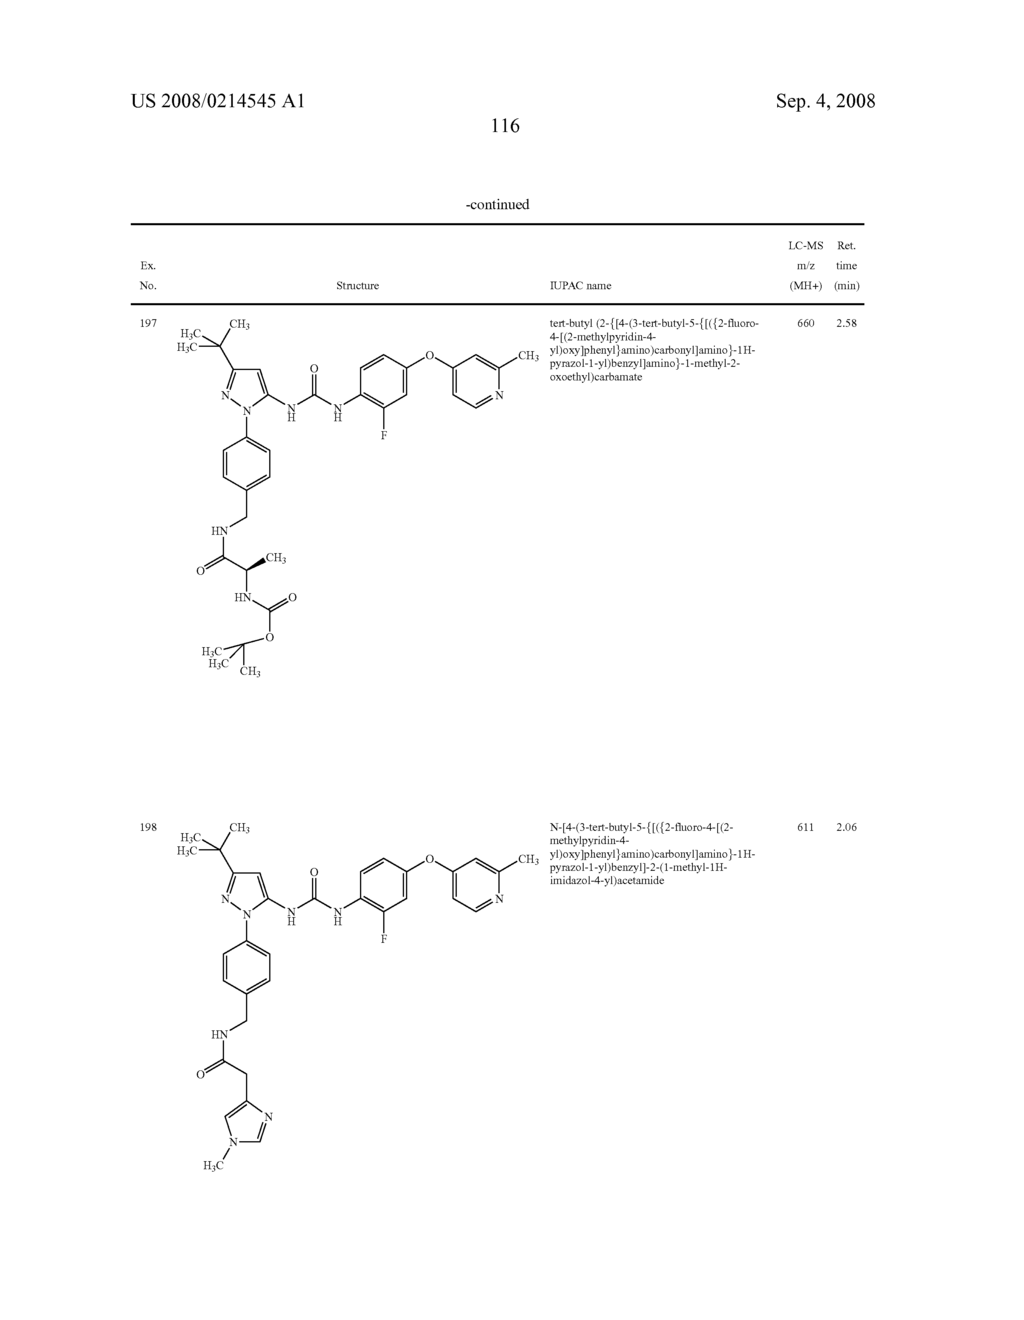 Substituted Pyrazolyl Urea Derivatives Useful in the Treatment of Cancer - diagram, schematic, and image 117